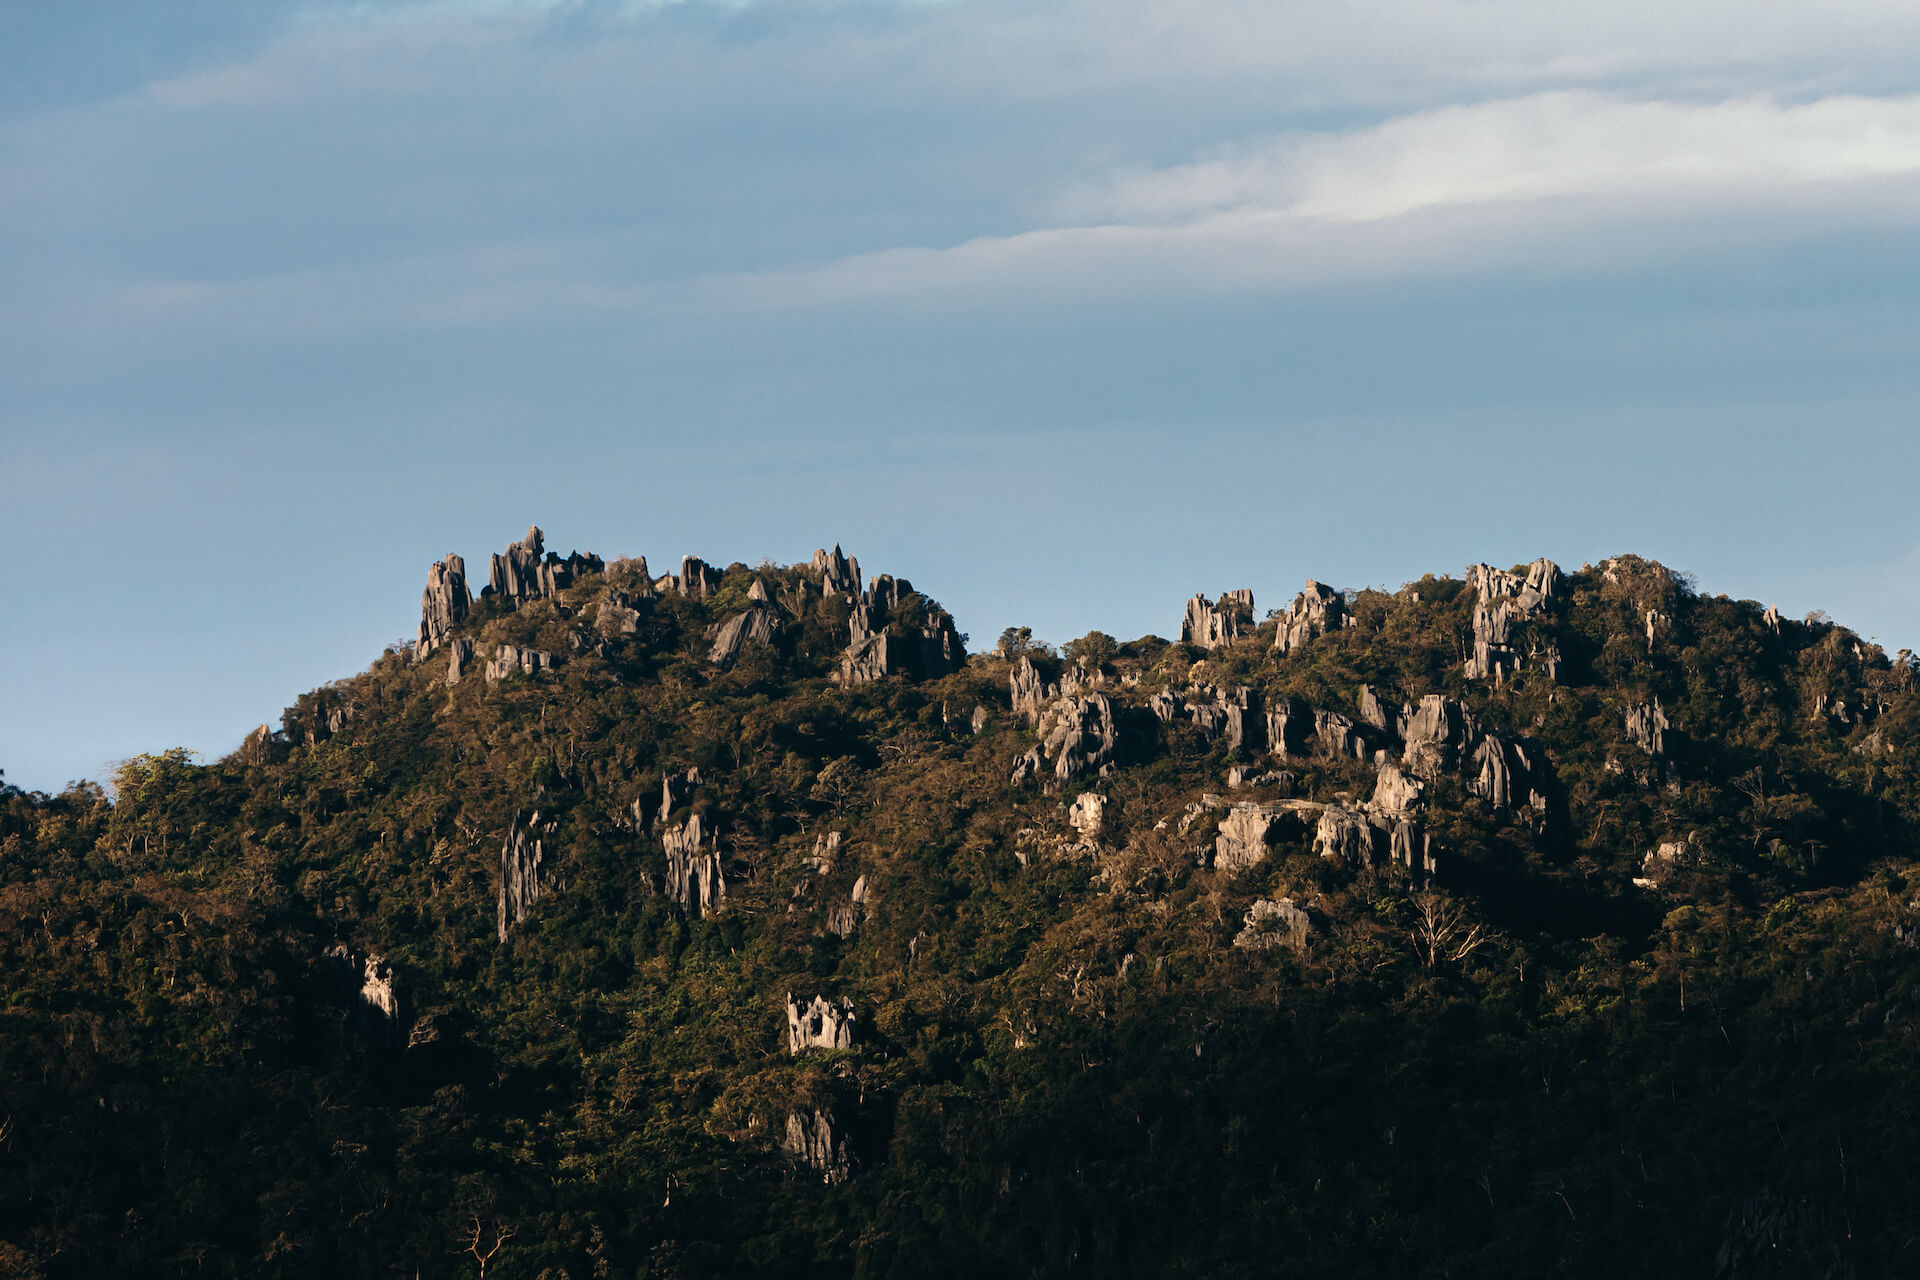 Sierra Madre rock formations as seen from Rizal